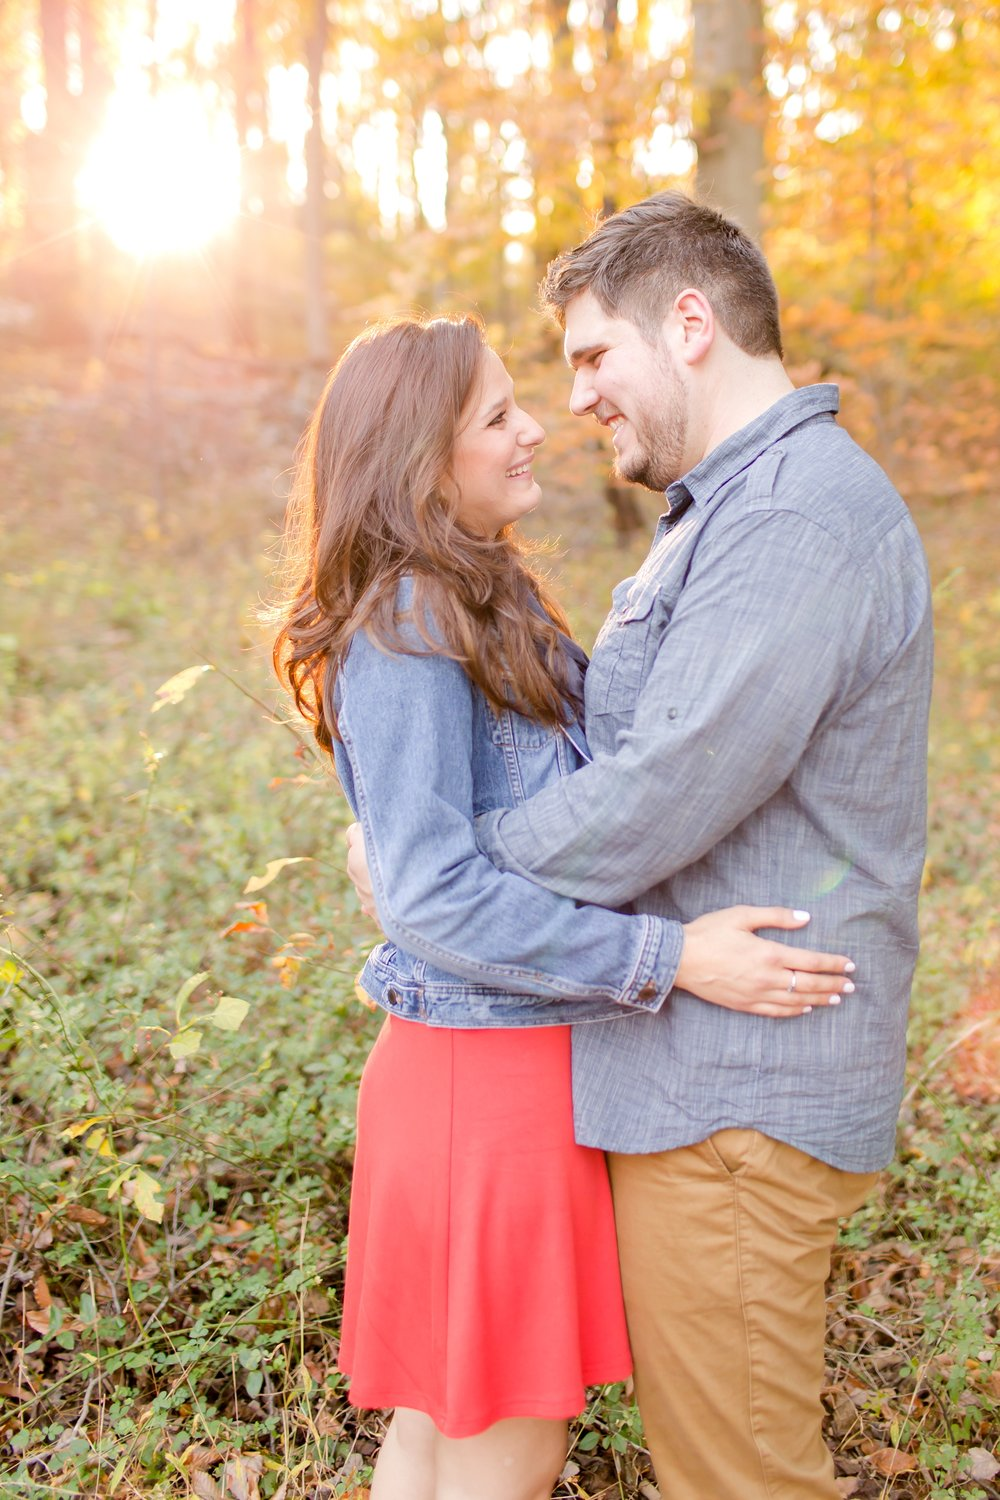 Rebecca & Greg Engagement-154_anna grace photography baltimore maryland engagement photographer jerusalem mill engagementphoto.jpg